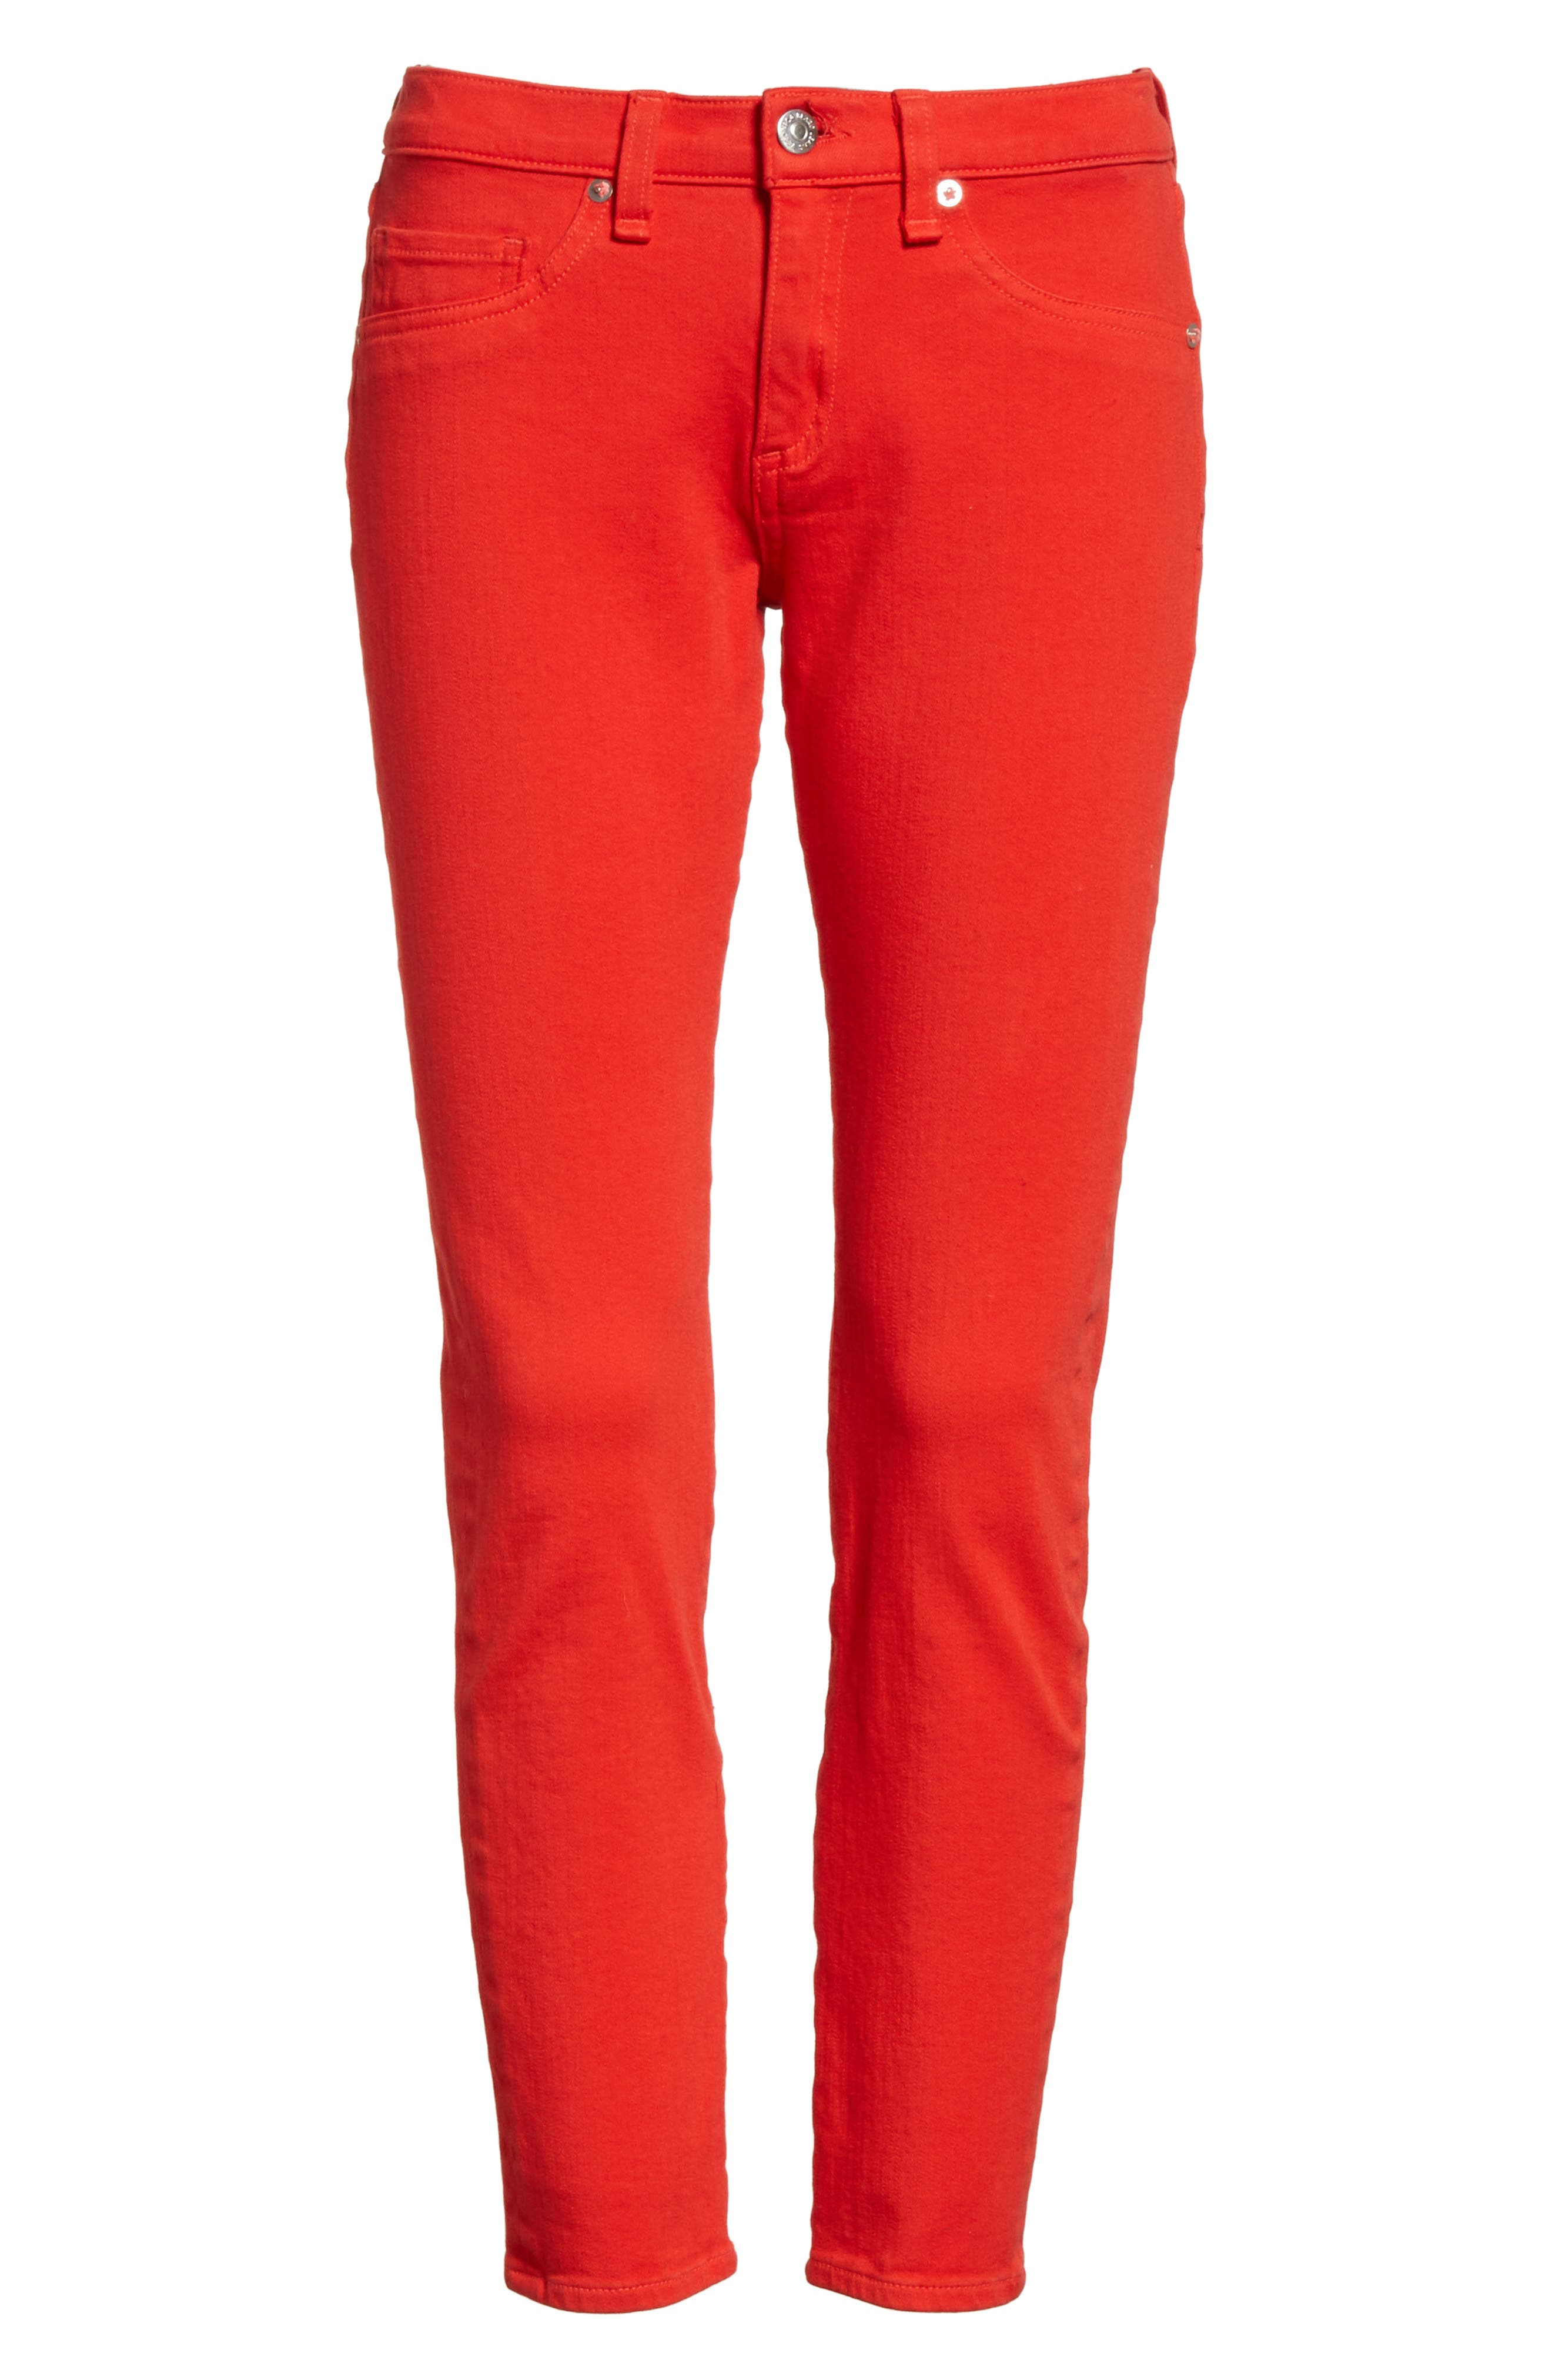 Brook Crop Skinny Jeans,                             Alternate thumbnail 6, color,                             Neon Red